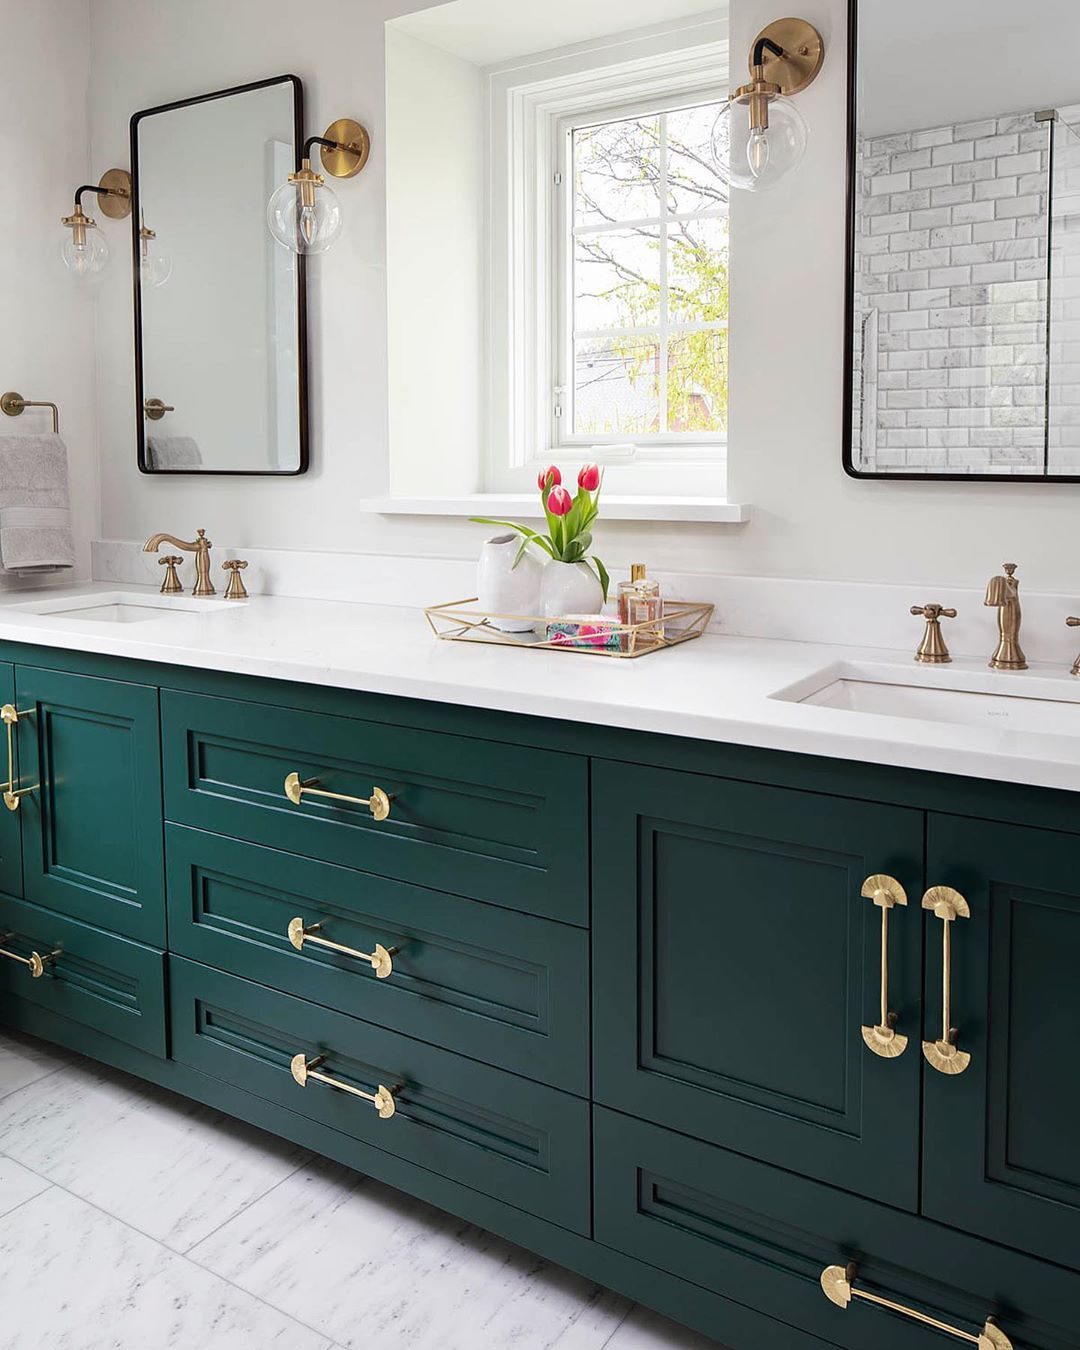 Davin Interiors On Instagram Sending You Love And Luck Today Inspired By A Dark Green Bathroom Dark Green Bathrooms Green Bathroom Vanity Green Bathroom [ 1350 x 1080 Pixel ]